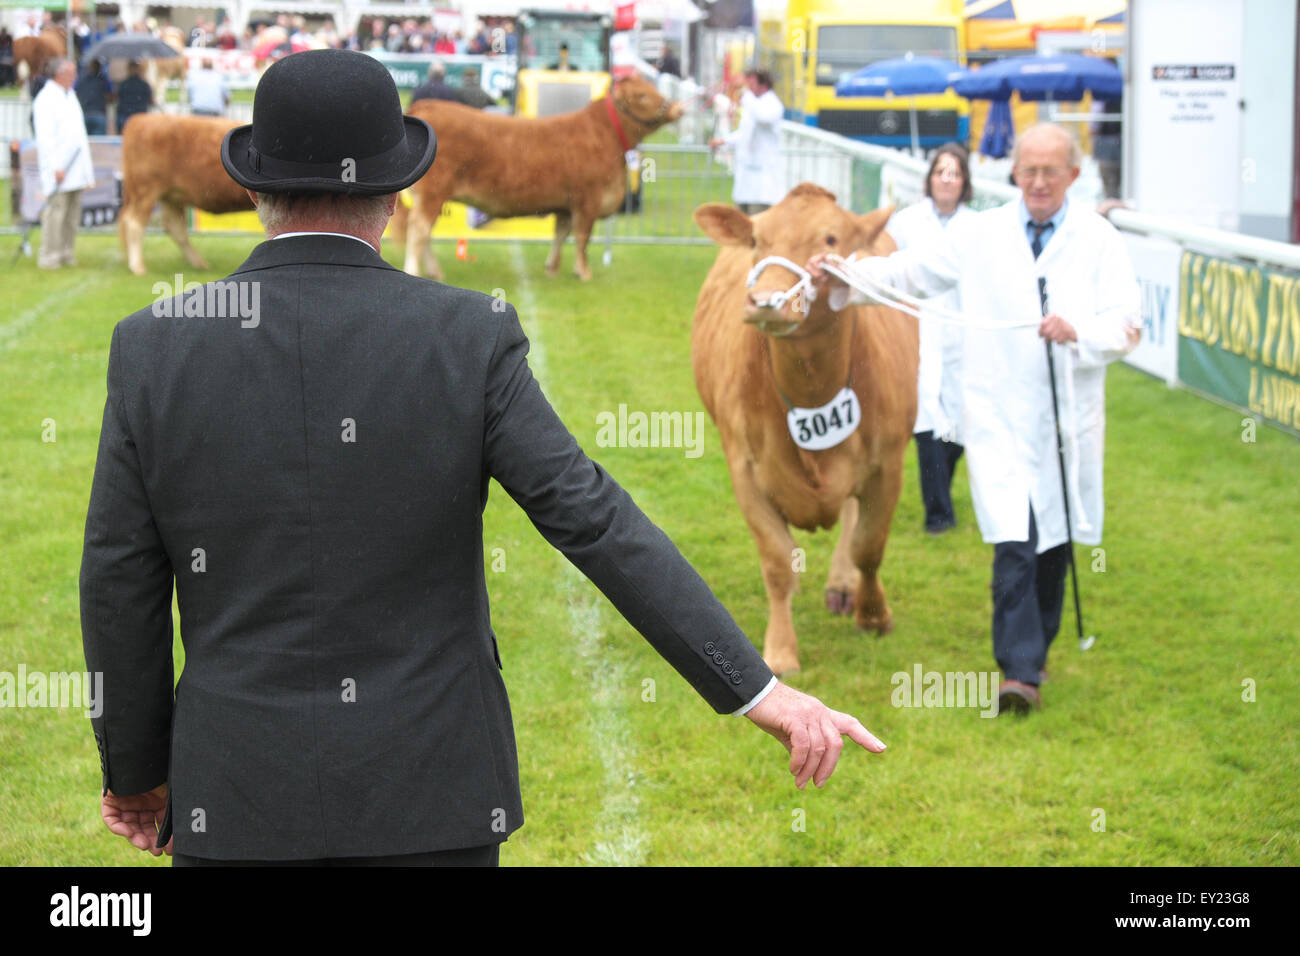 Royal Welsh Show Builth Wells, Powys, UK July, 2015. A judge inspecting South Devon Cattle in the show arena. The - Stock Image